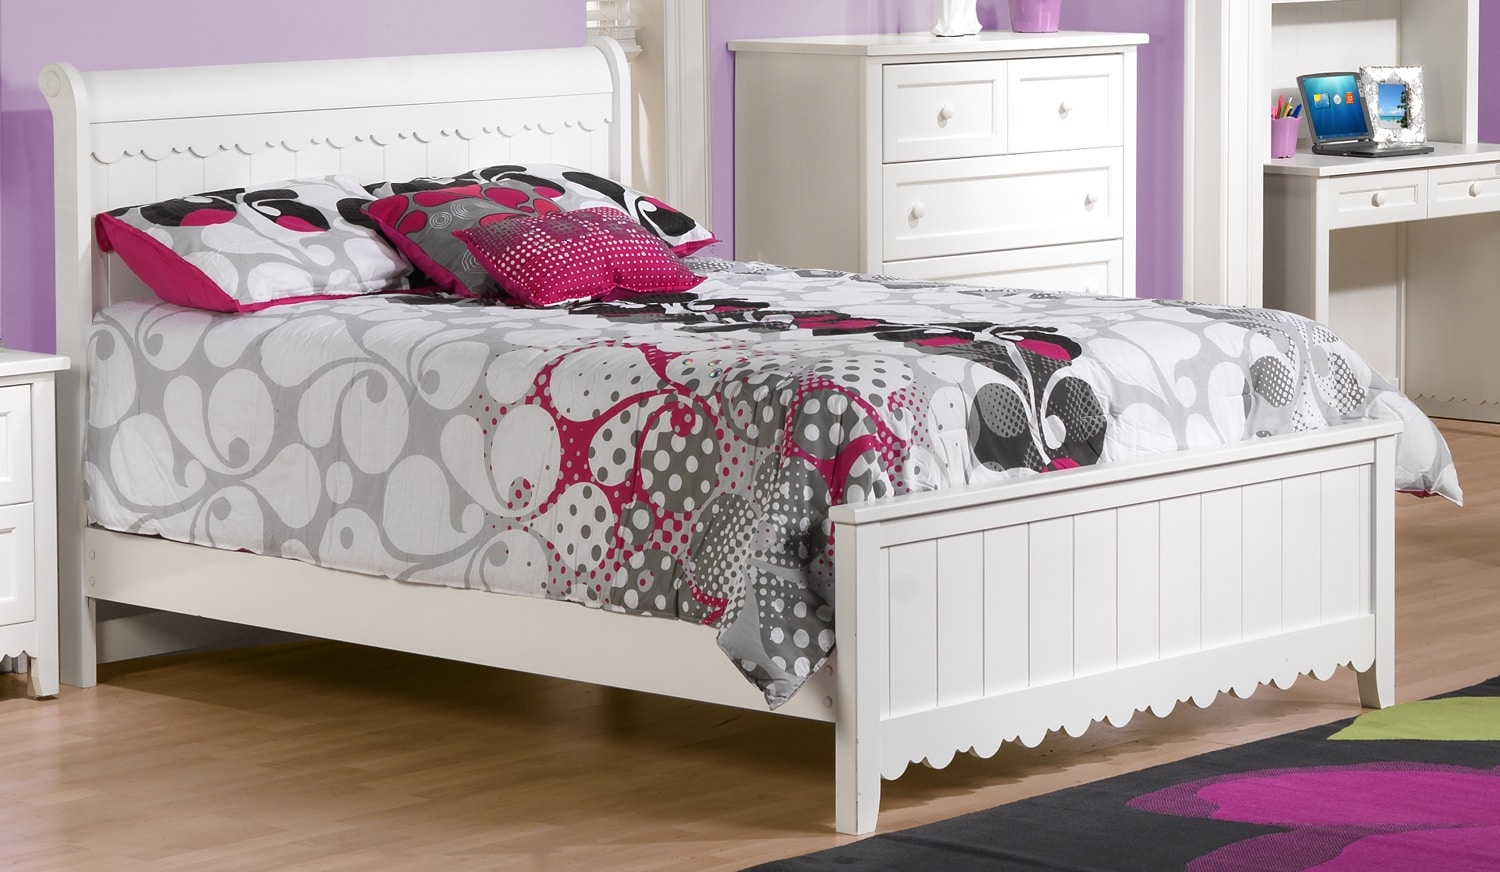 [Sweetdreams Twin Bed - White]